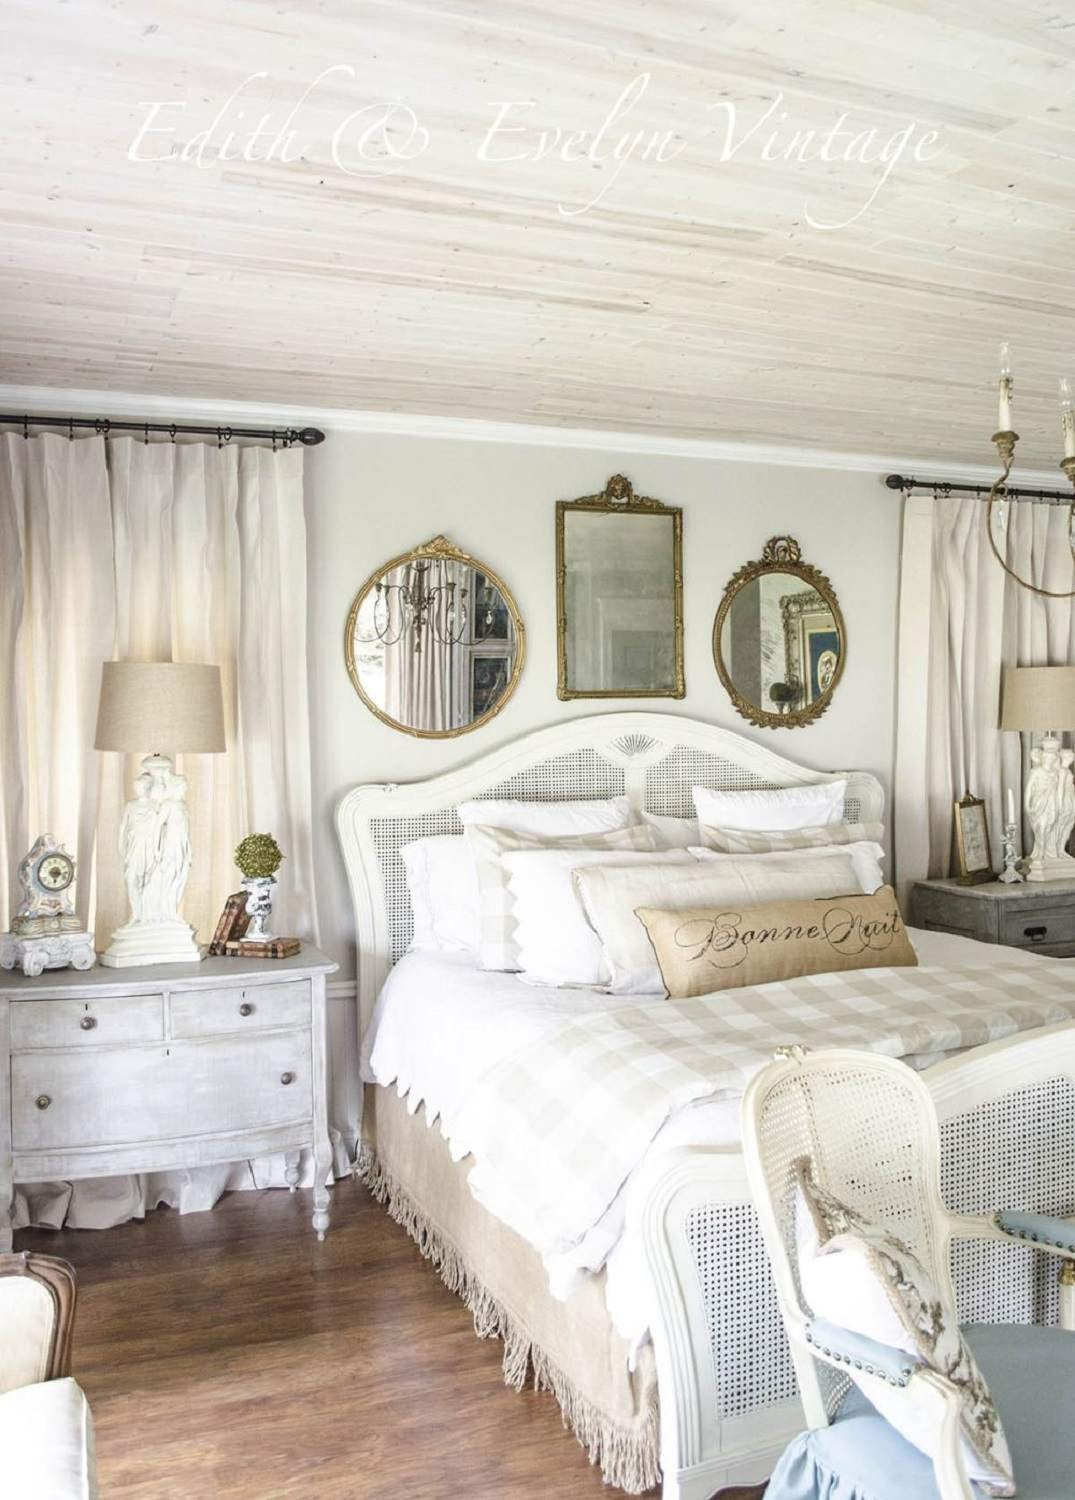 Farmhouse Style Bedroom Set New Ideas for French Country Style Bedroom Decor